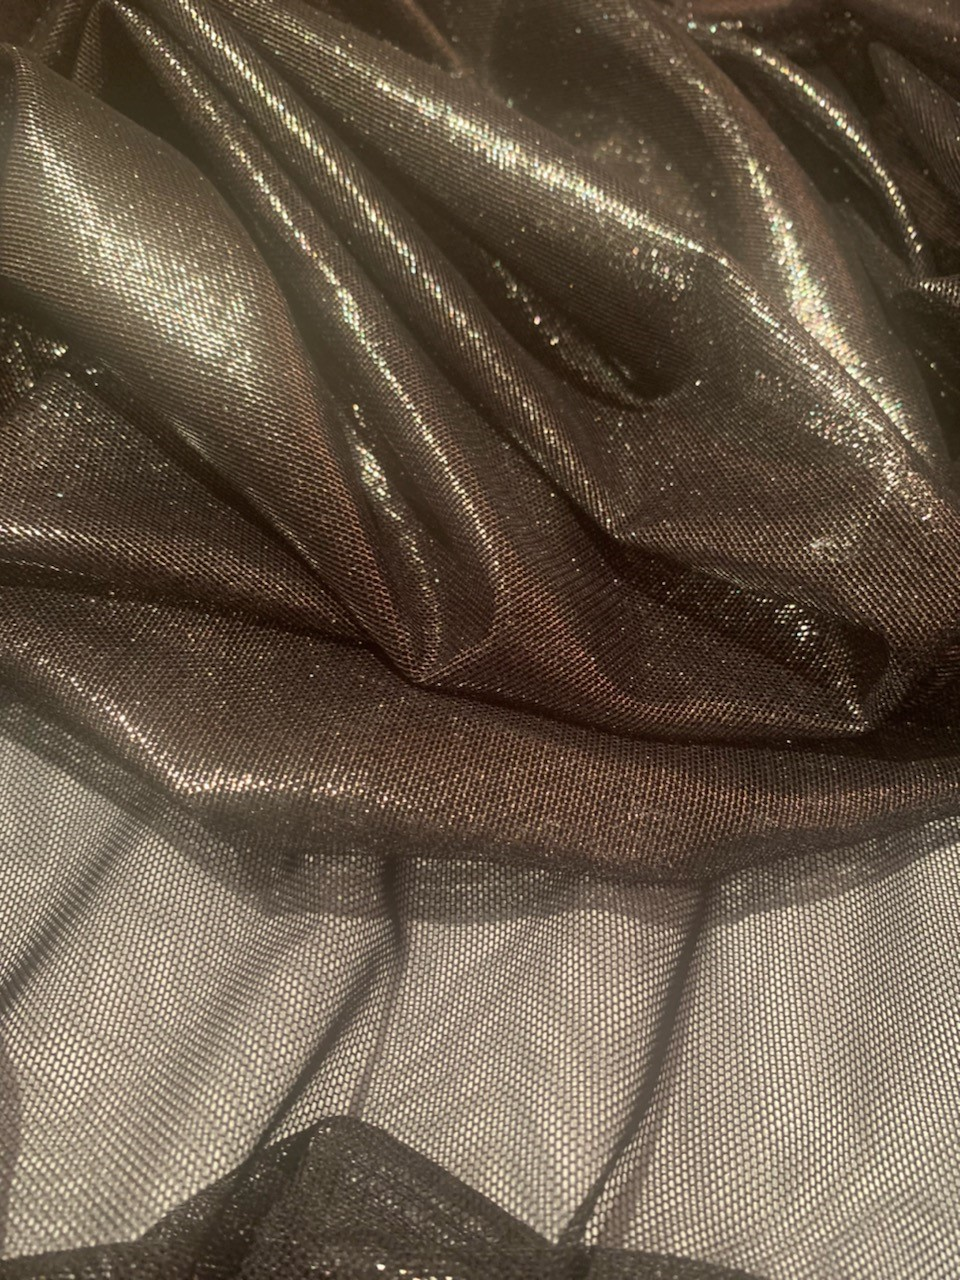 "57"" Black/Silver Foil Power Mesh Fabric By The Yard"